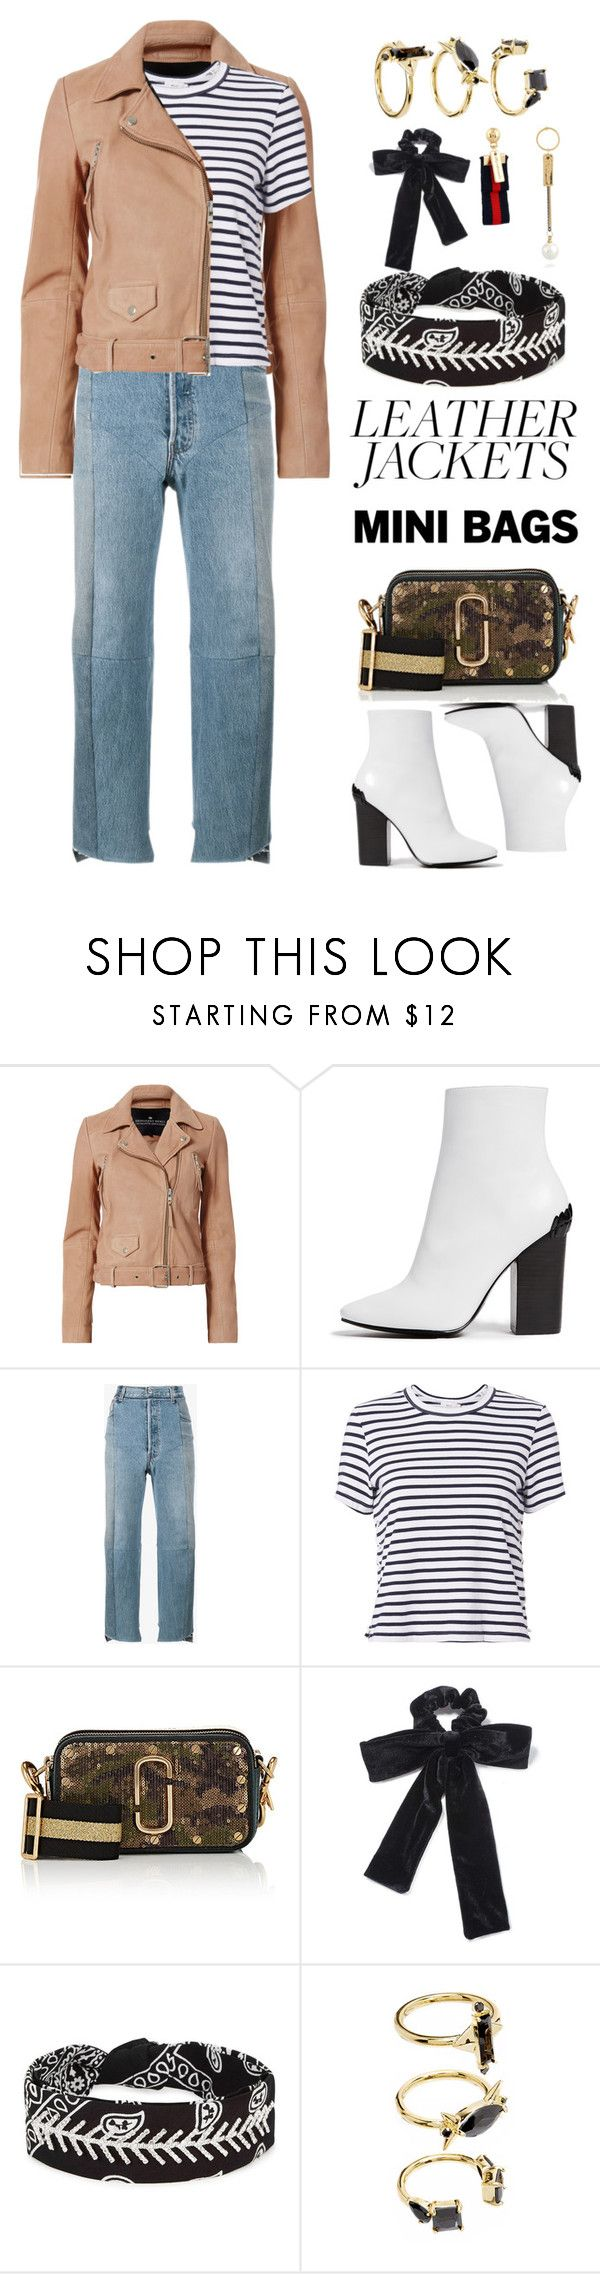 """""""Untitled #570"""" by froyalbiatsii ❤ liked on Polyvore featuring Designers Remix, Kendall + Kylie, Vetements, A.L.C., Marc Jacobs, Miss Selfridge, Fallon, Noir Jewelry and WithChic"""